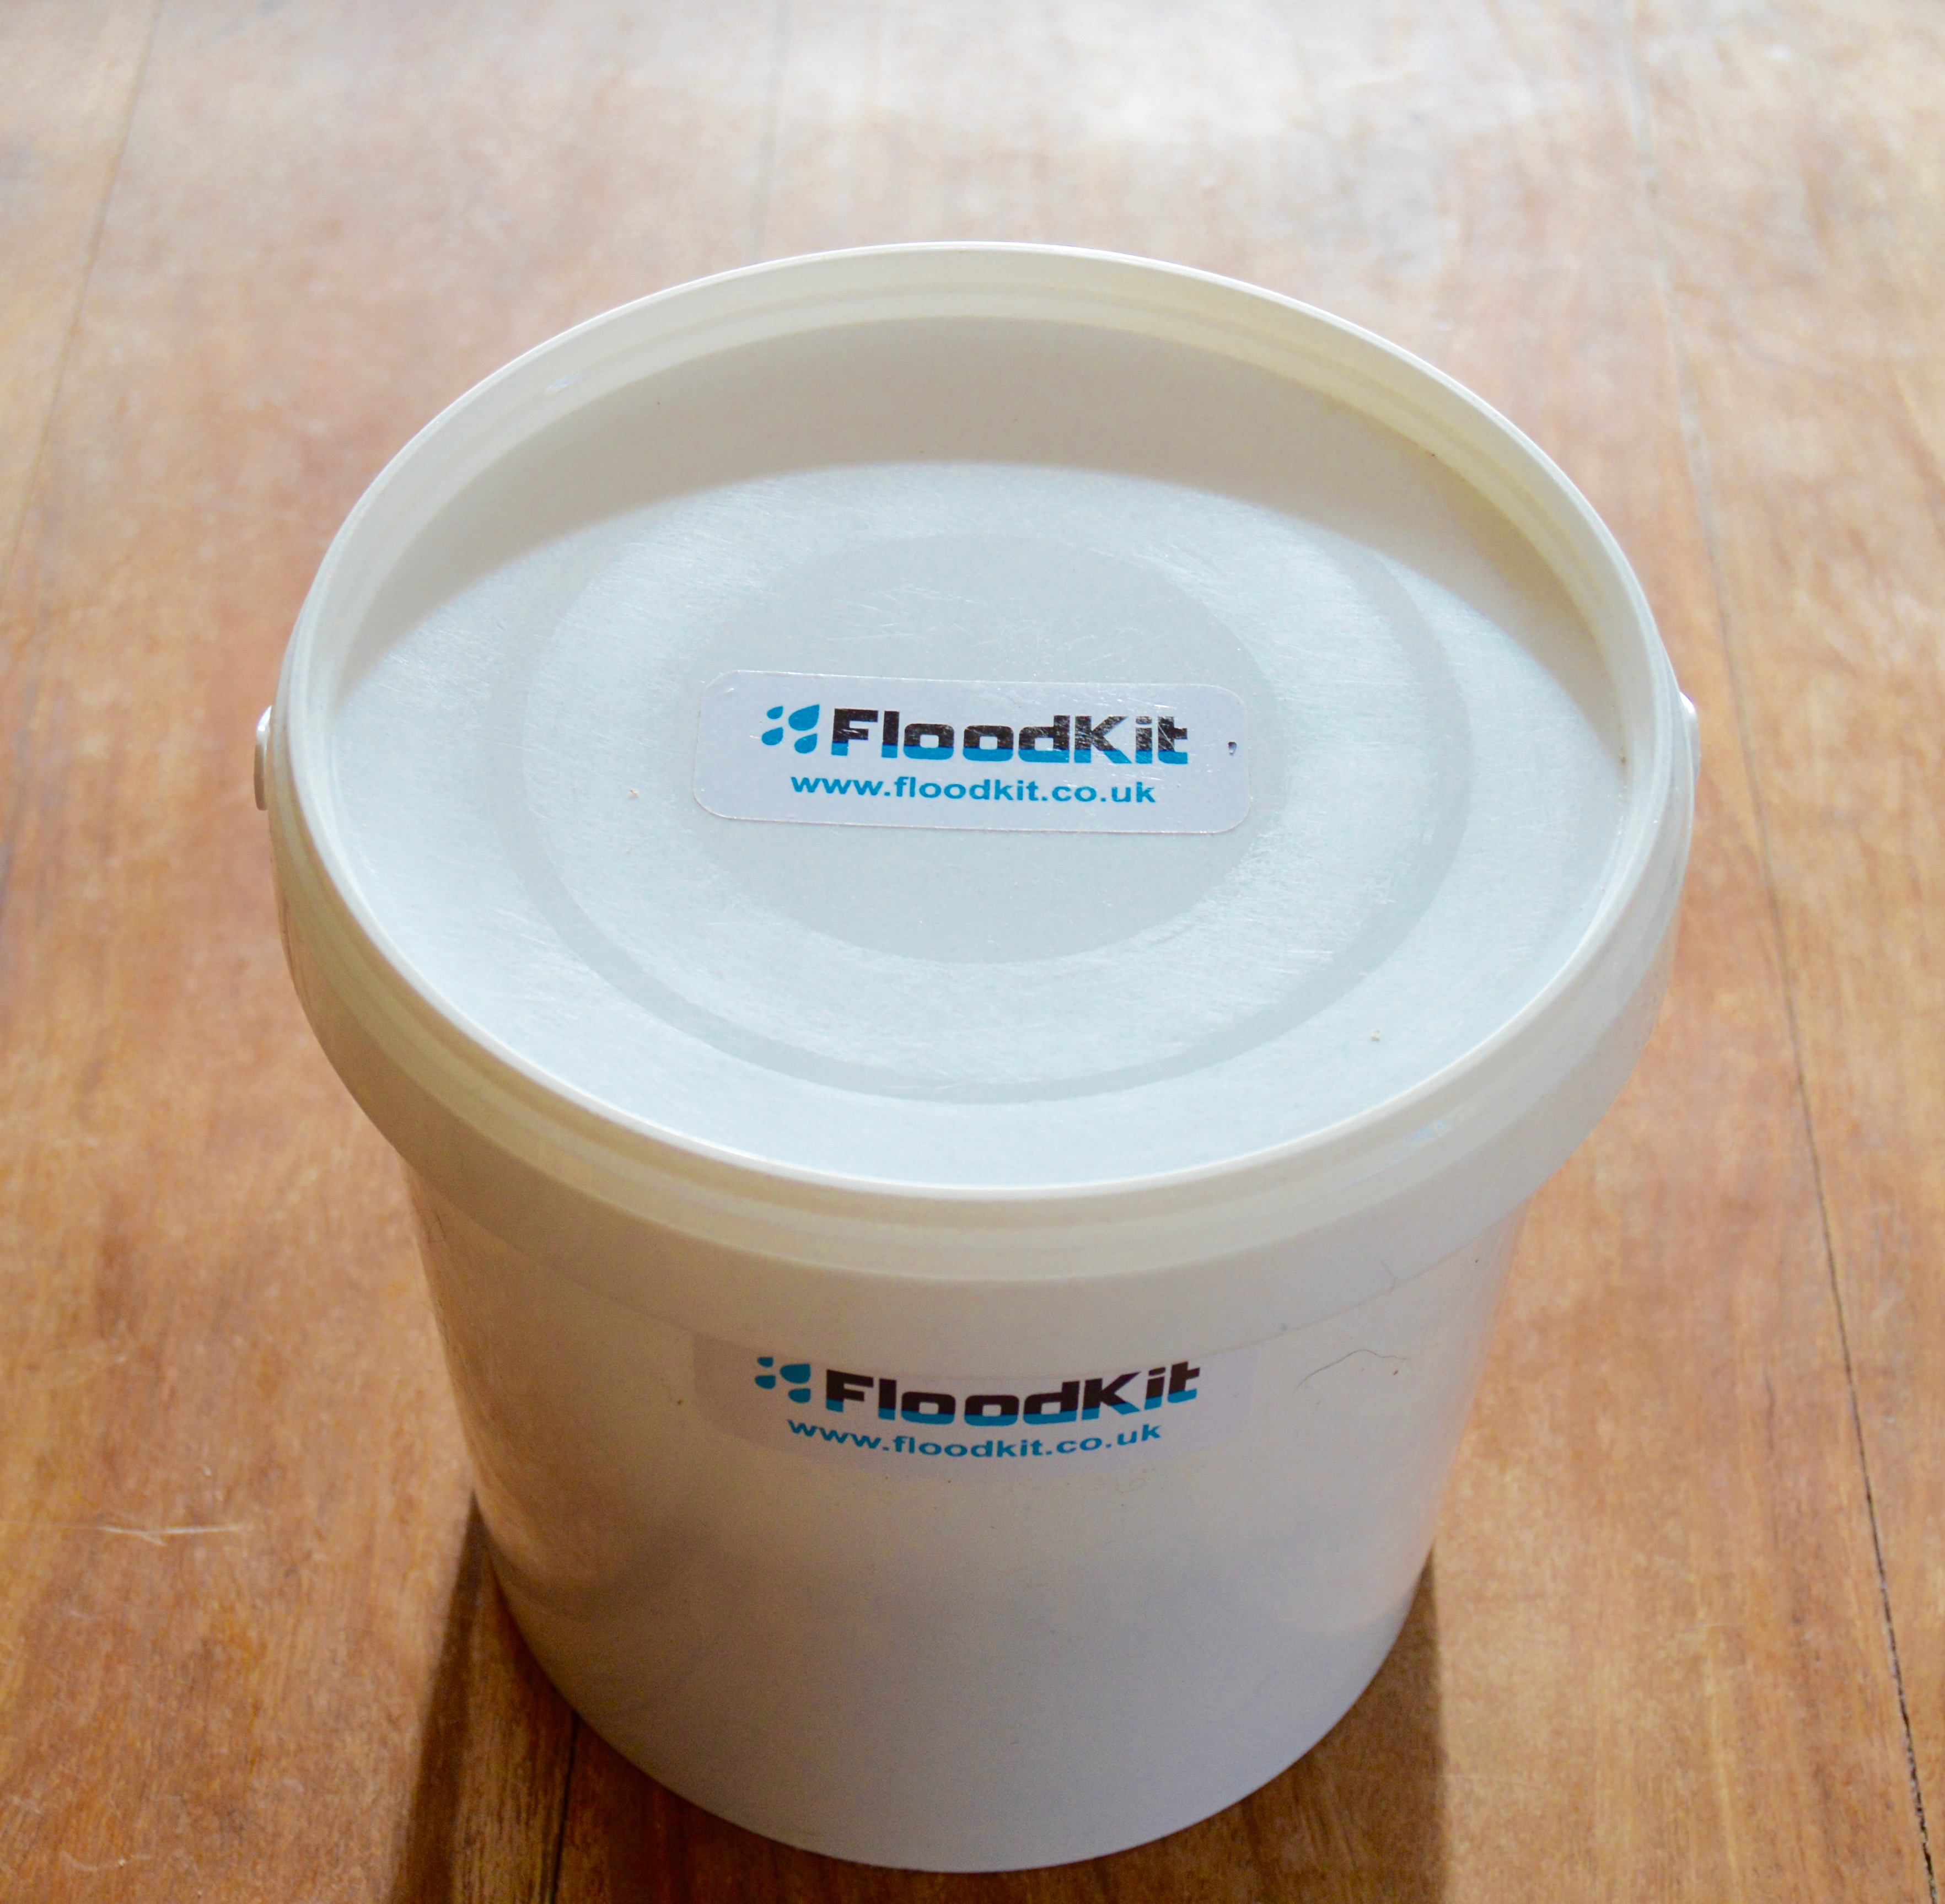 image of U bend bags for use with floodKit toilet stopper as a flood prevention product